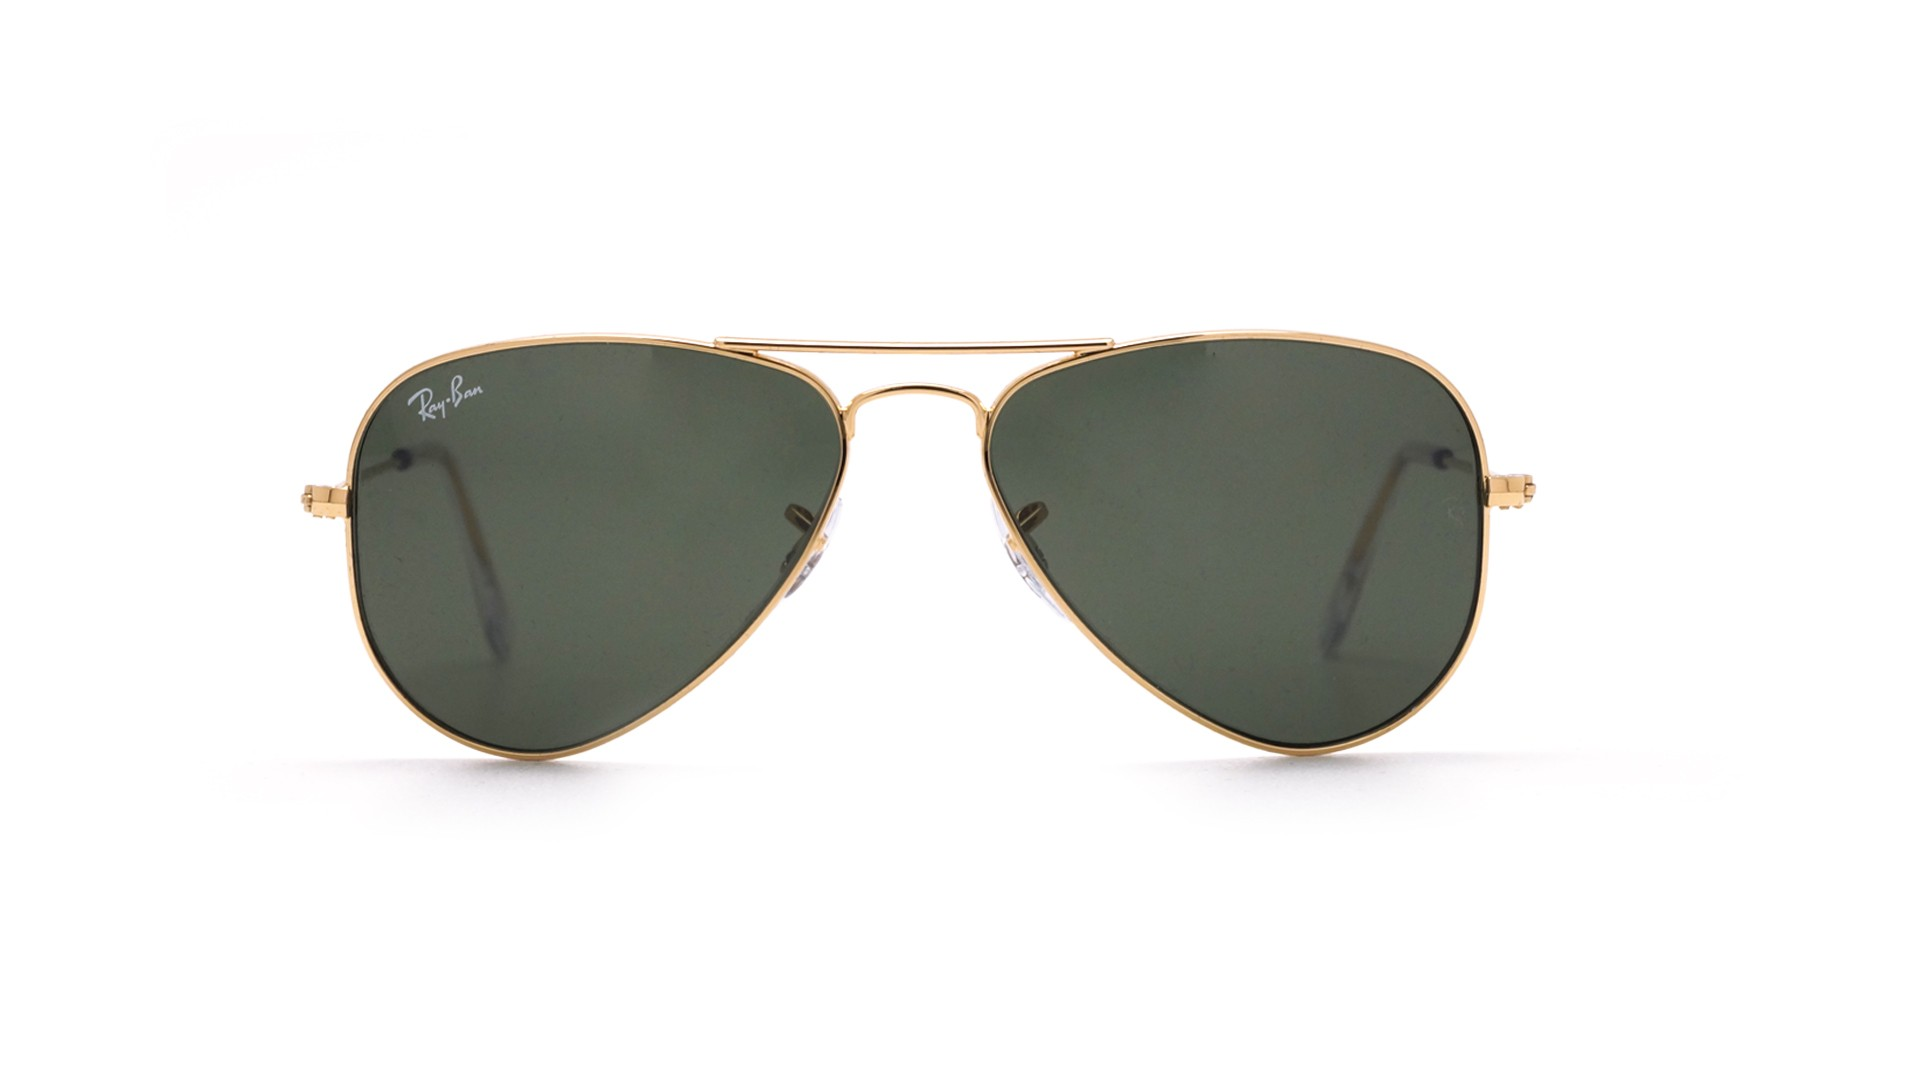 37534af776 Sunglasses Ray-Ban Aviator Gold G-15 RB3044 L0207 52-14 Small